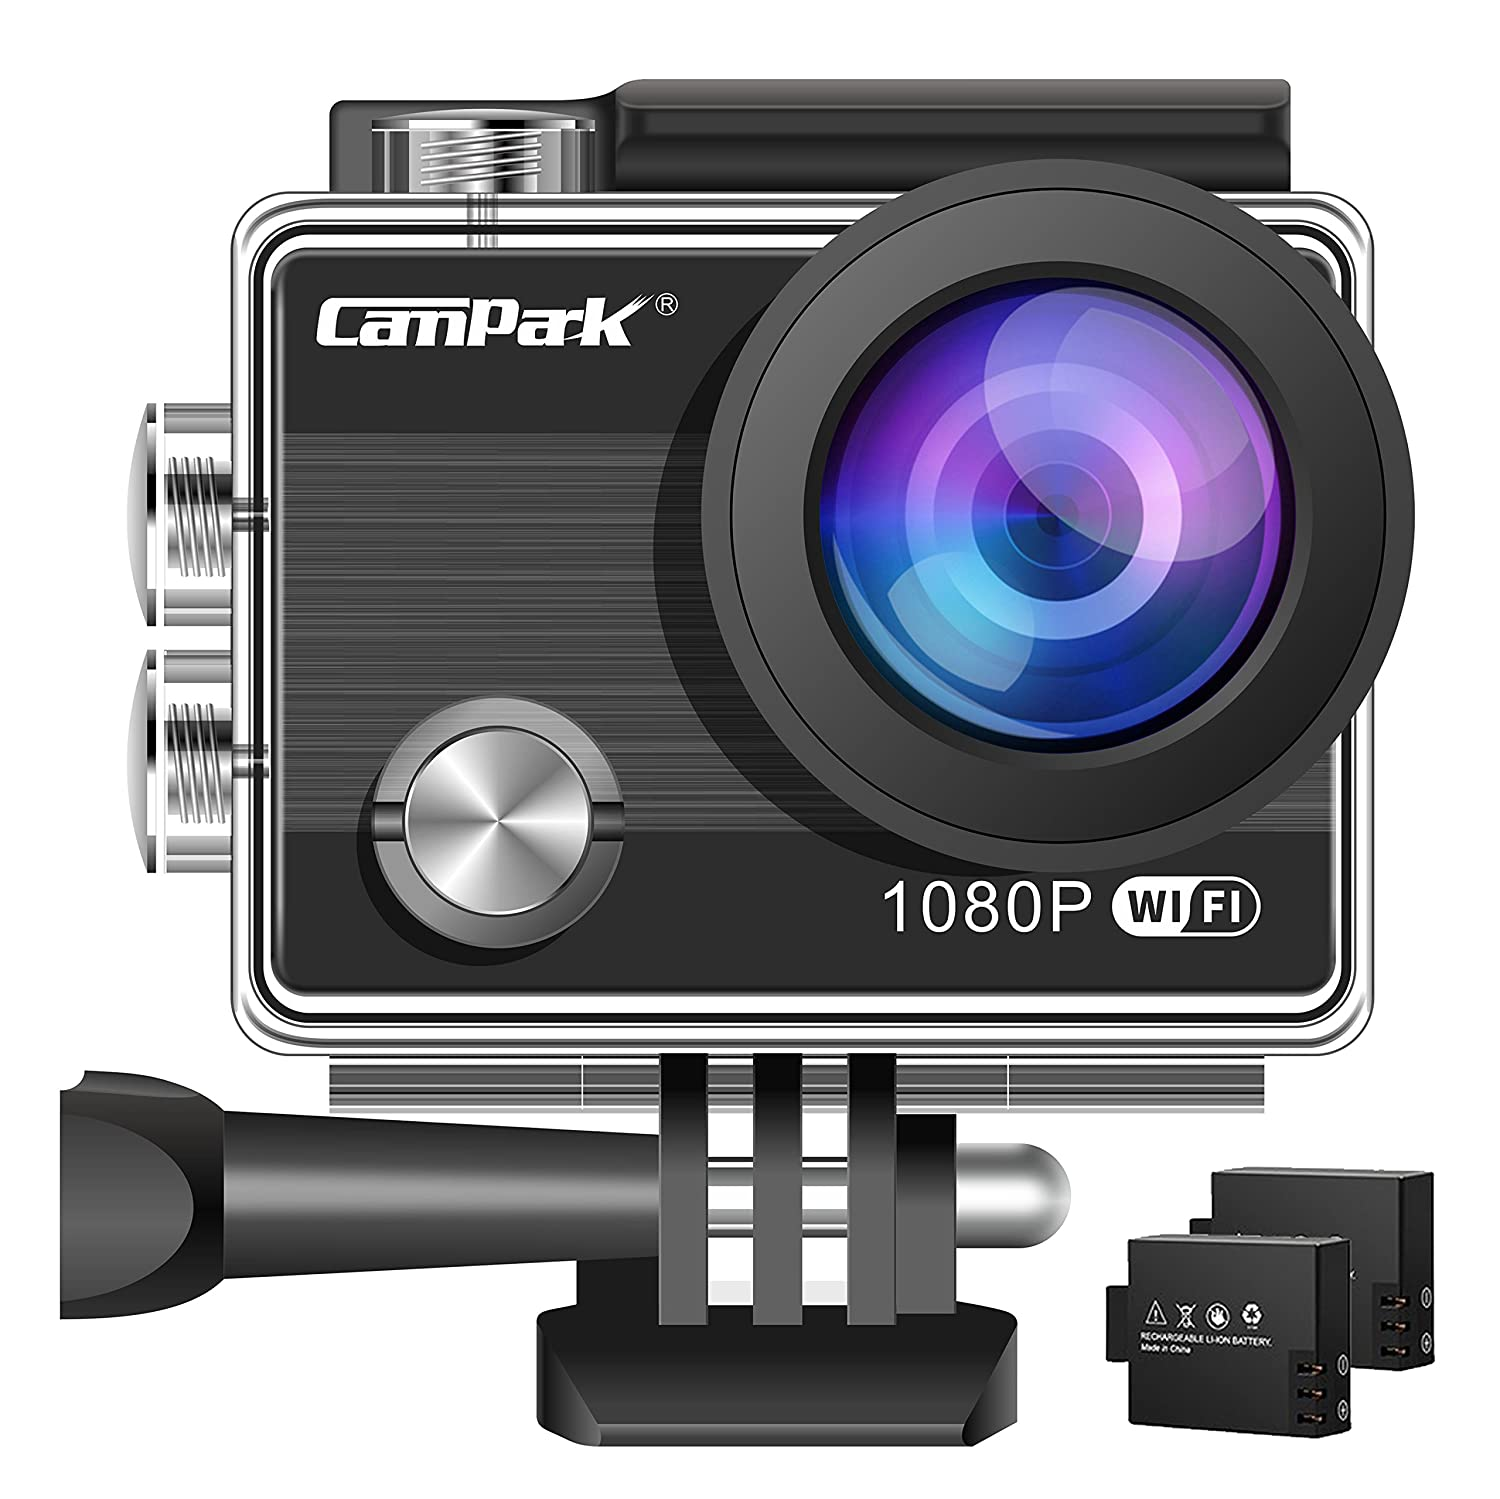 Campark ACT68 Action Camera WiFi 4K 12 MP Full HD 1080P Waterproof Underwater Cam with 170 Wide-Angle Lens and Rechargeable Battery, include 30M Waterproof Case